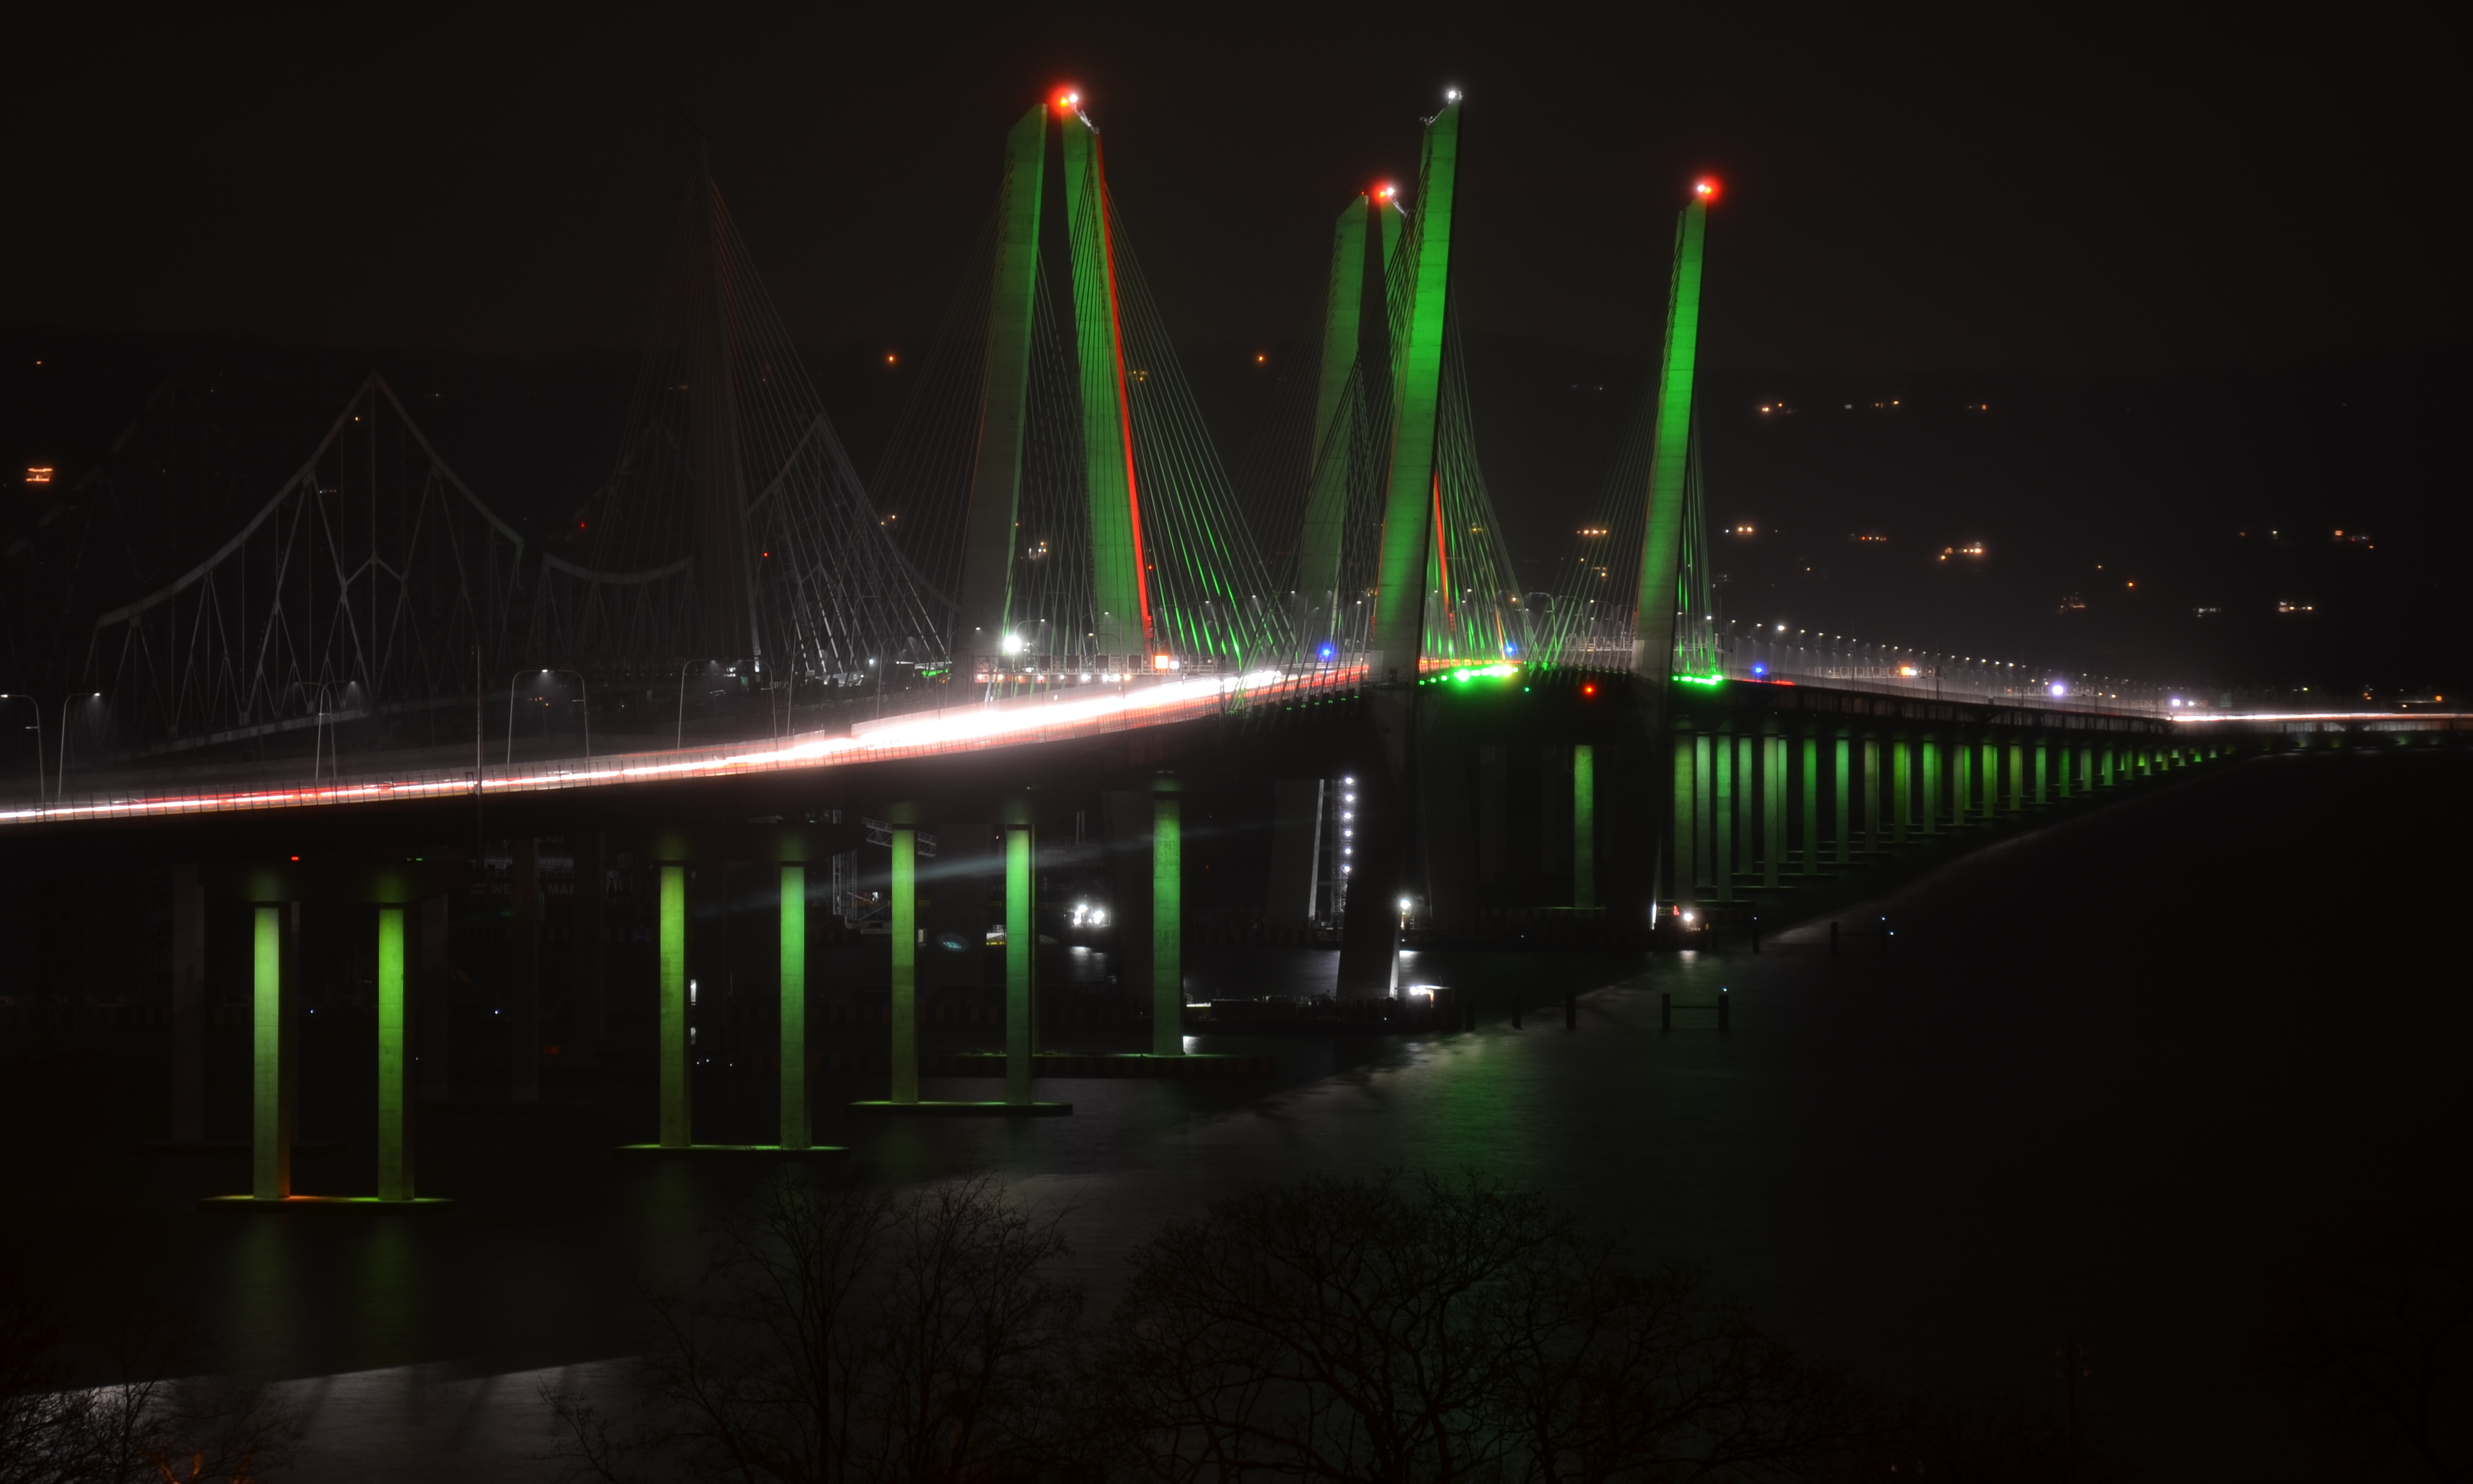 Christmas Colors in New Bridge's Light Scheme | Kaleidoscope Eyes